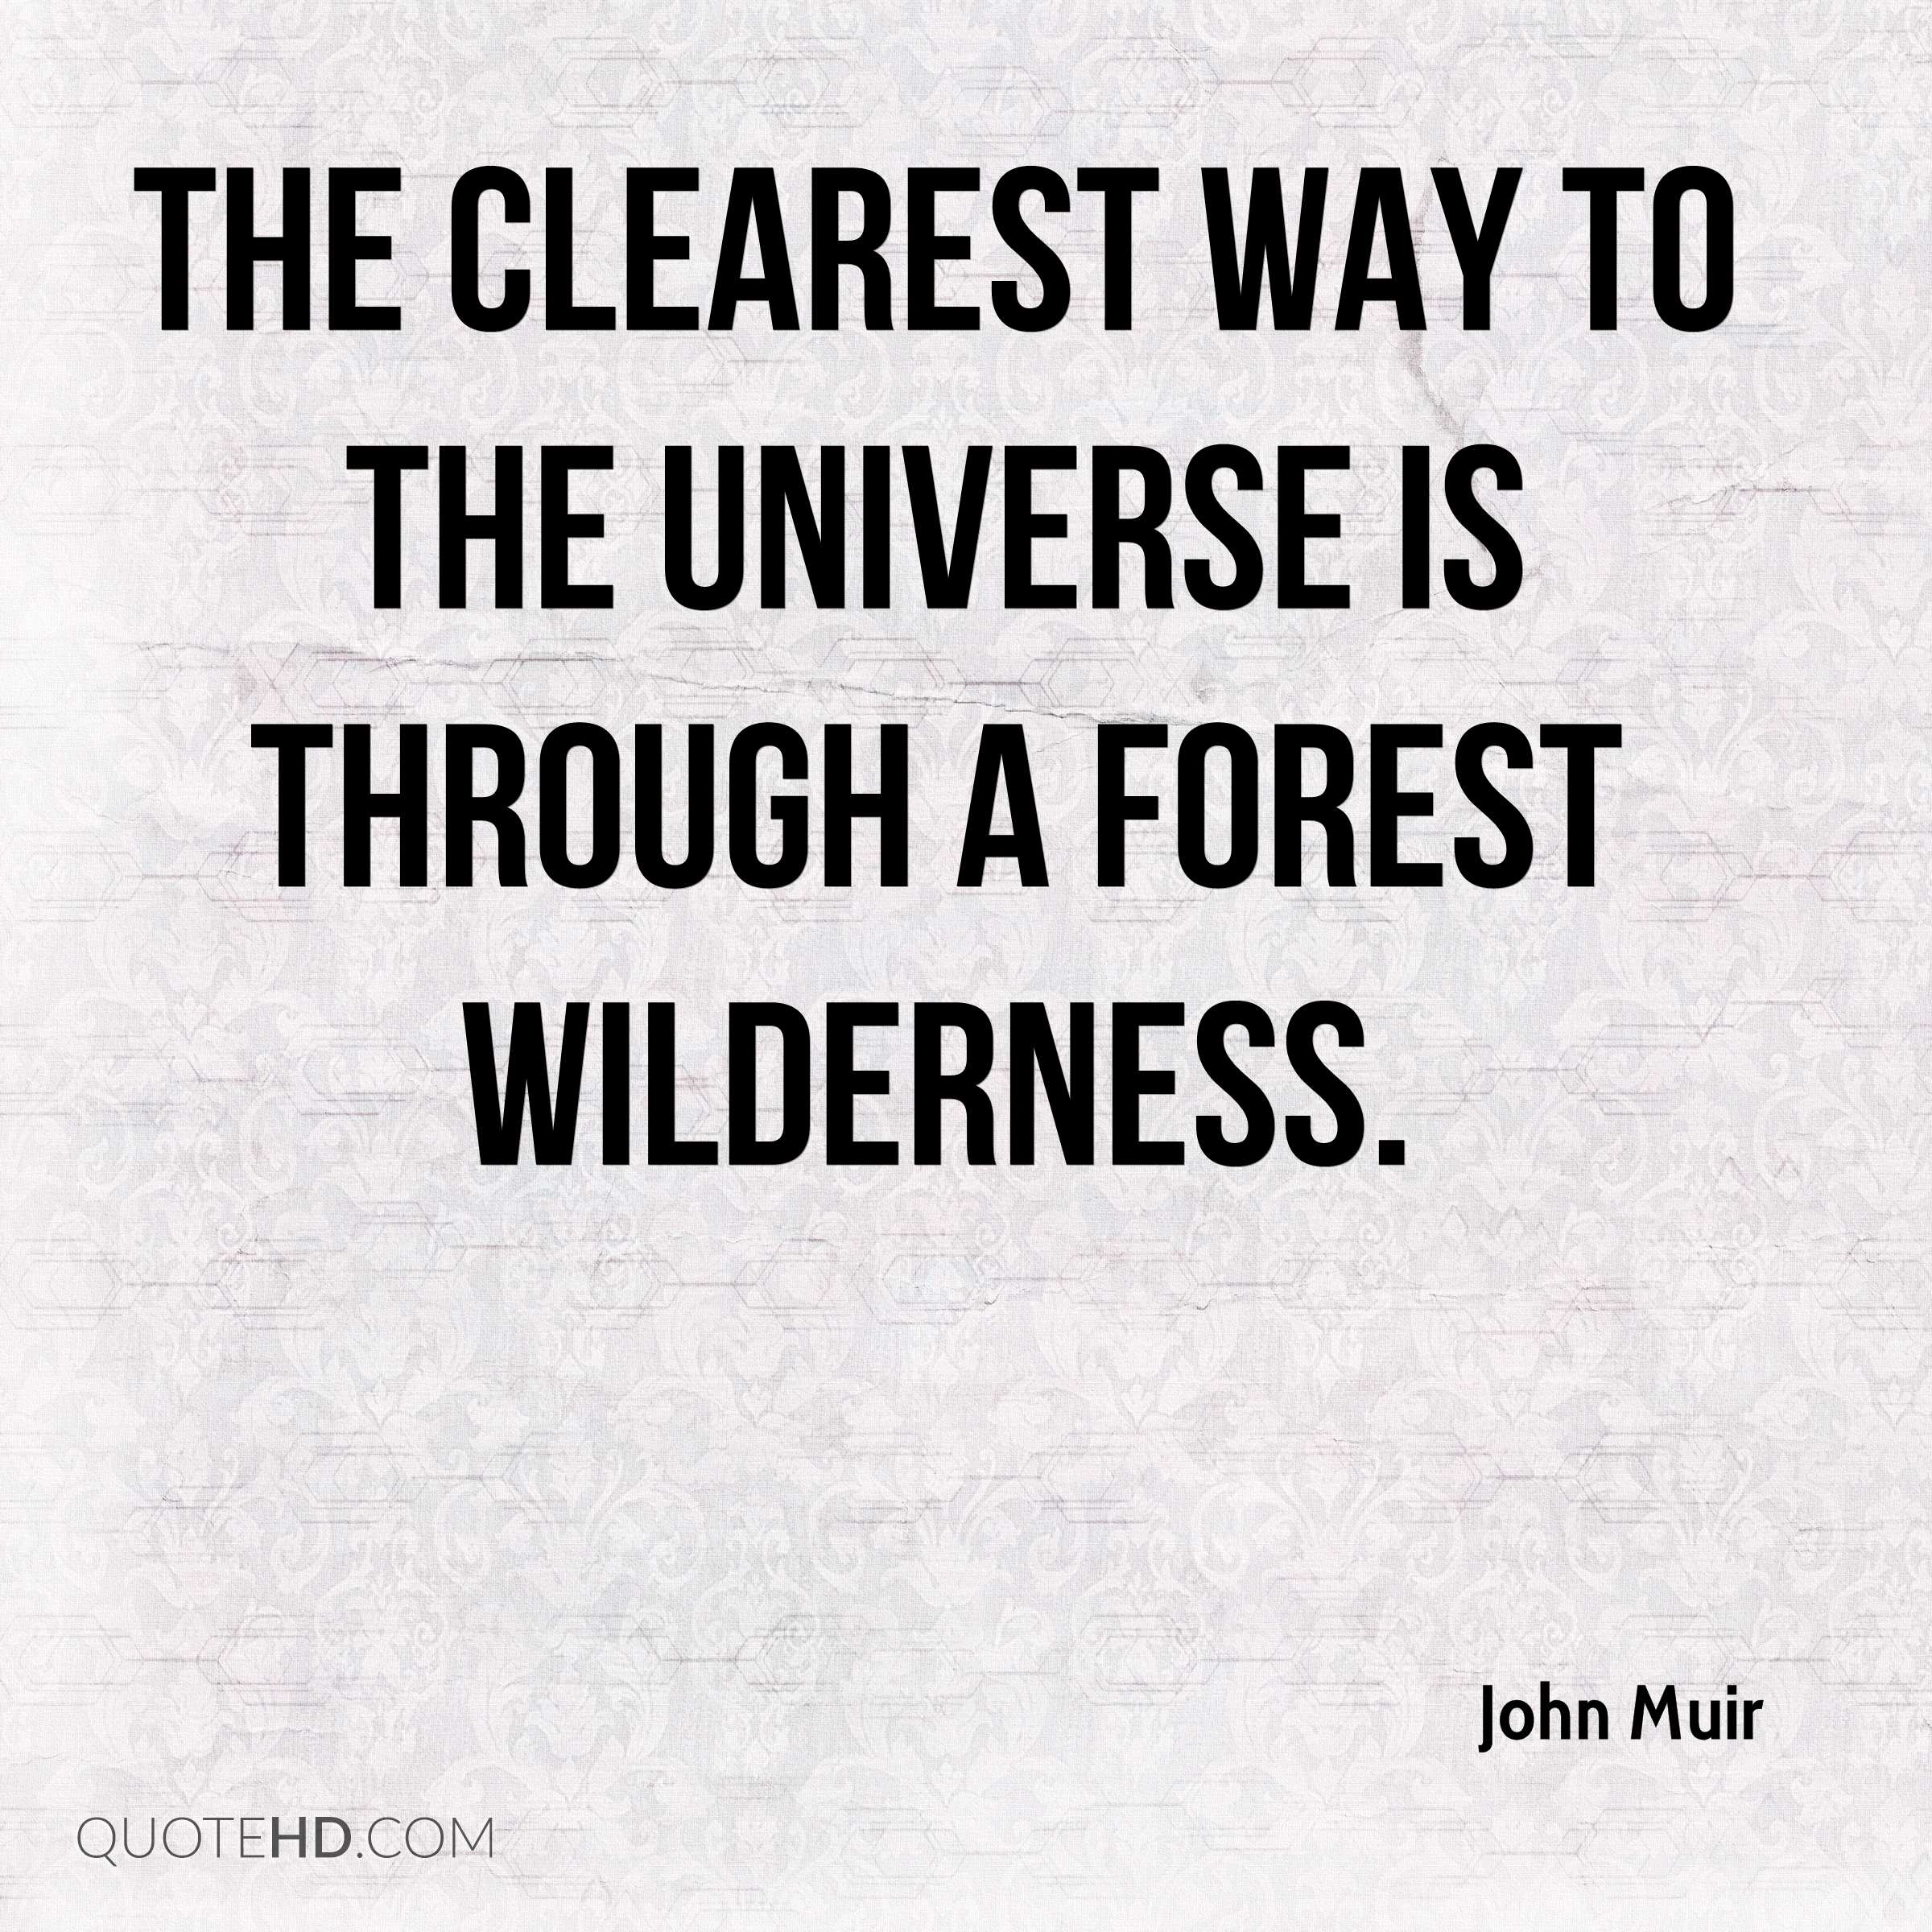 The clearest way to the Universe is through a forest wilderness.